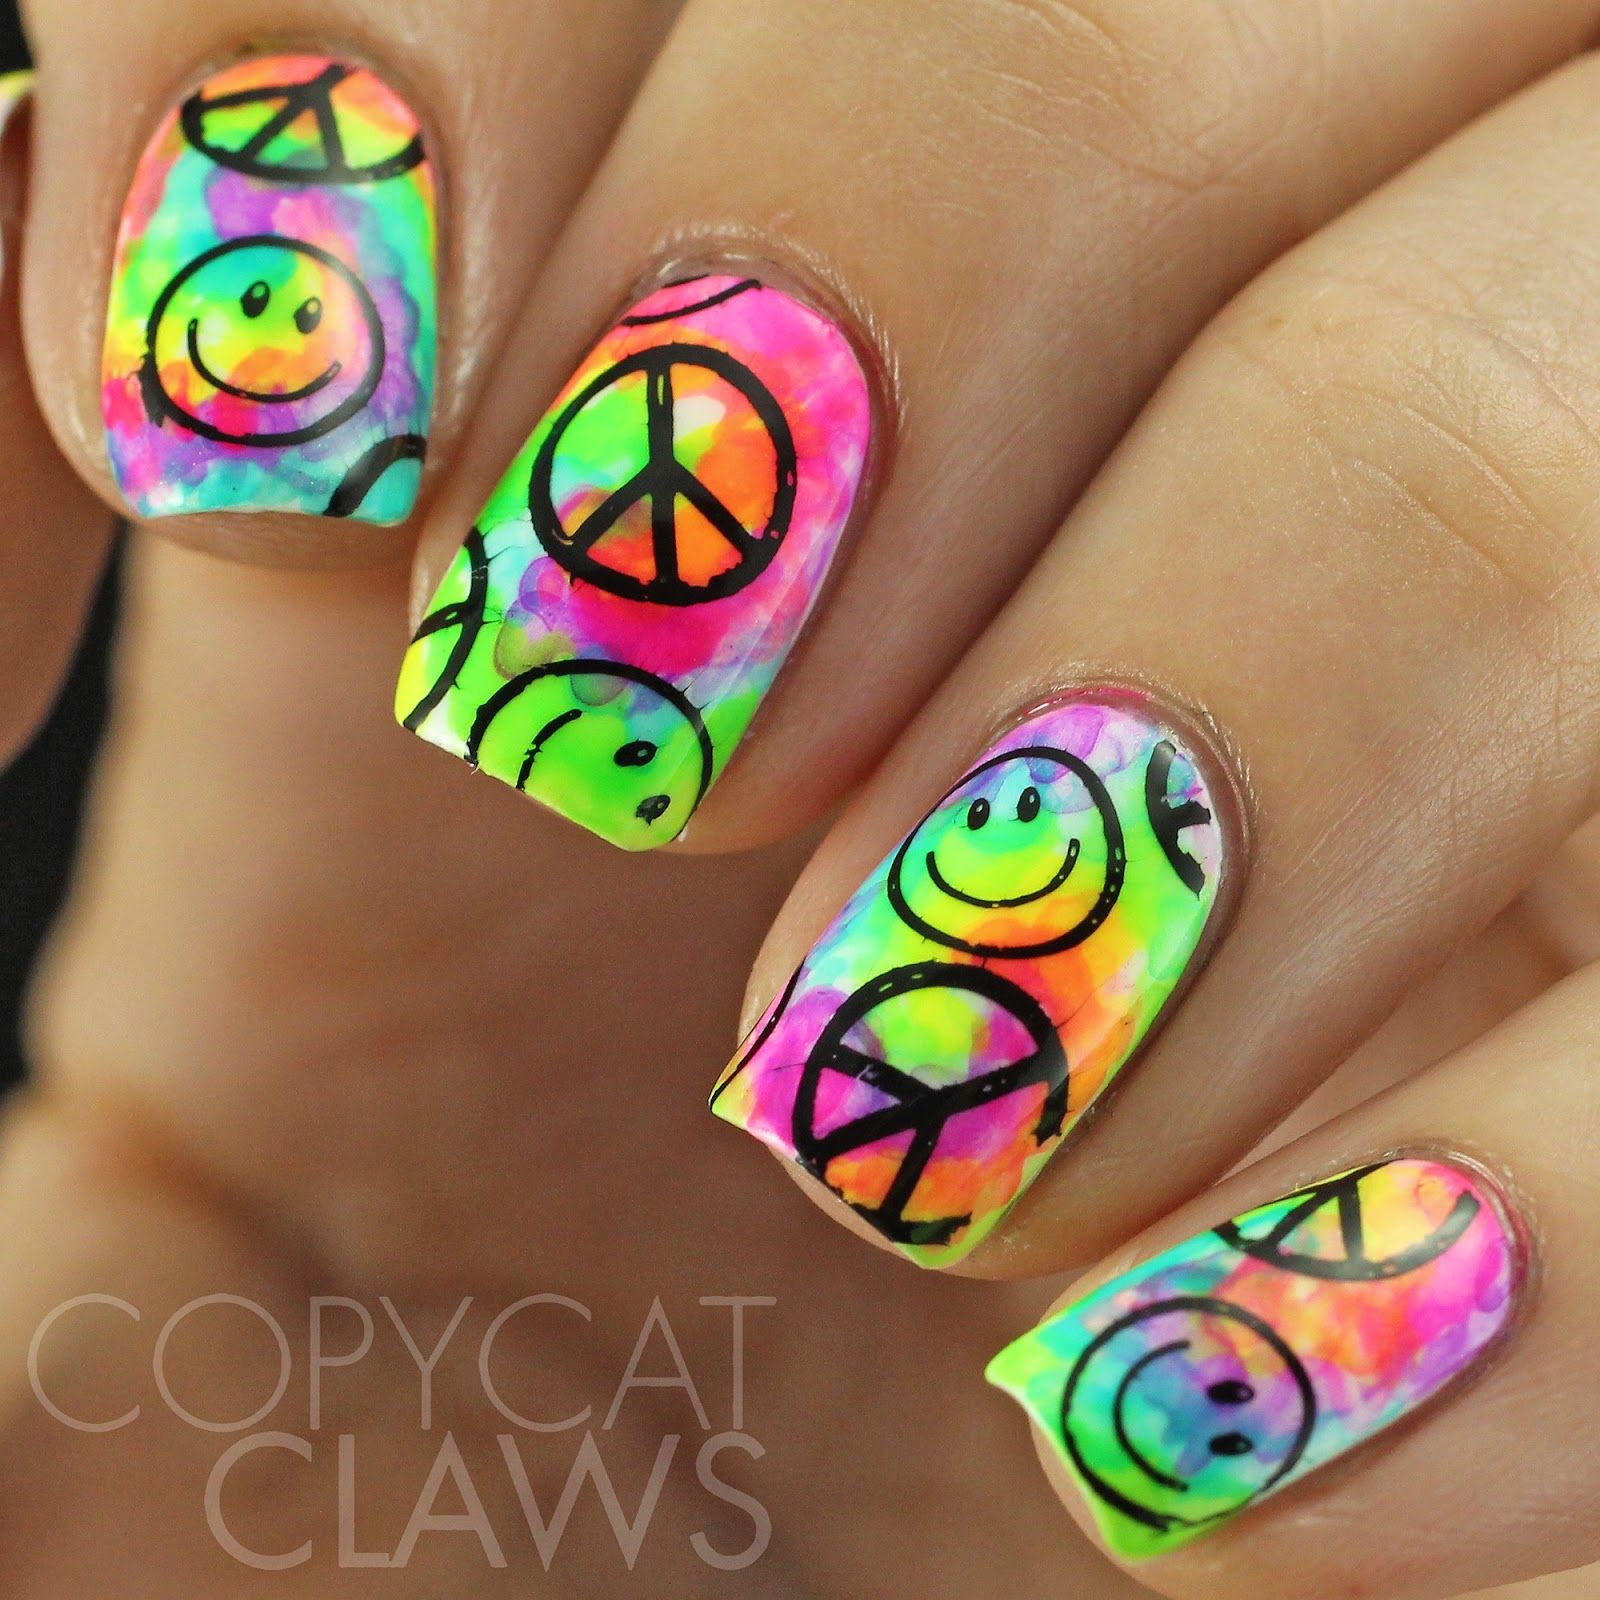 Copycat Claws: Tie Dye Nails With Stamping | Creative Nail Art ...